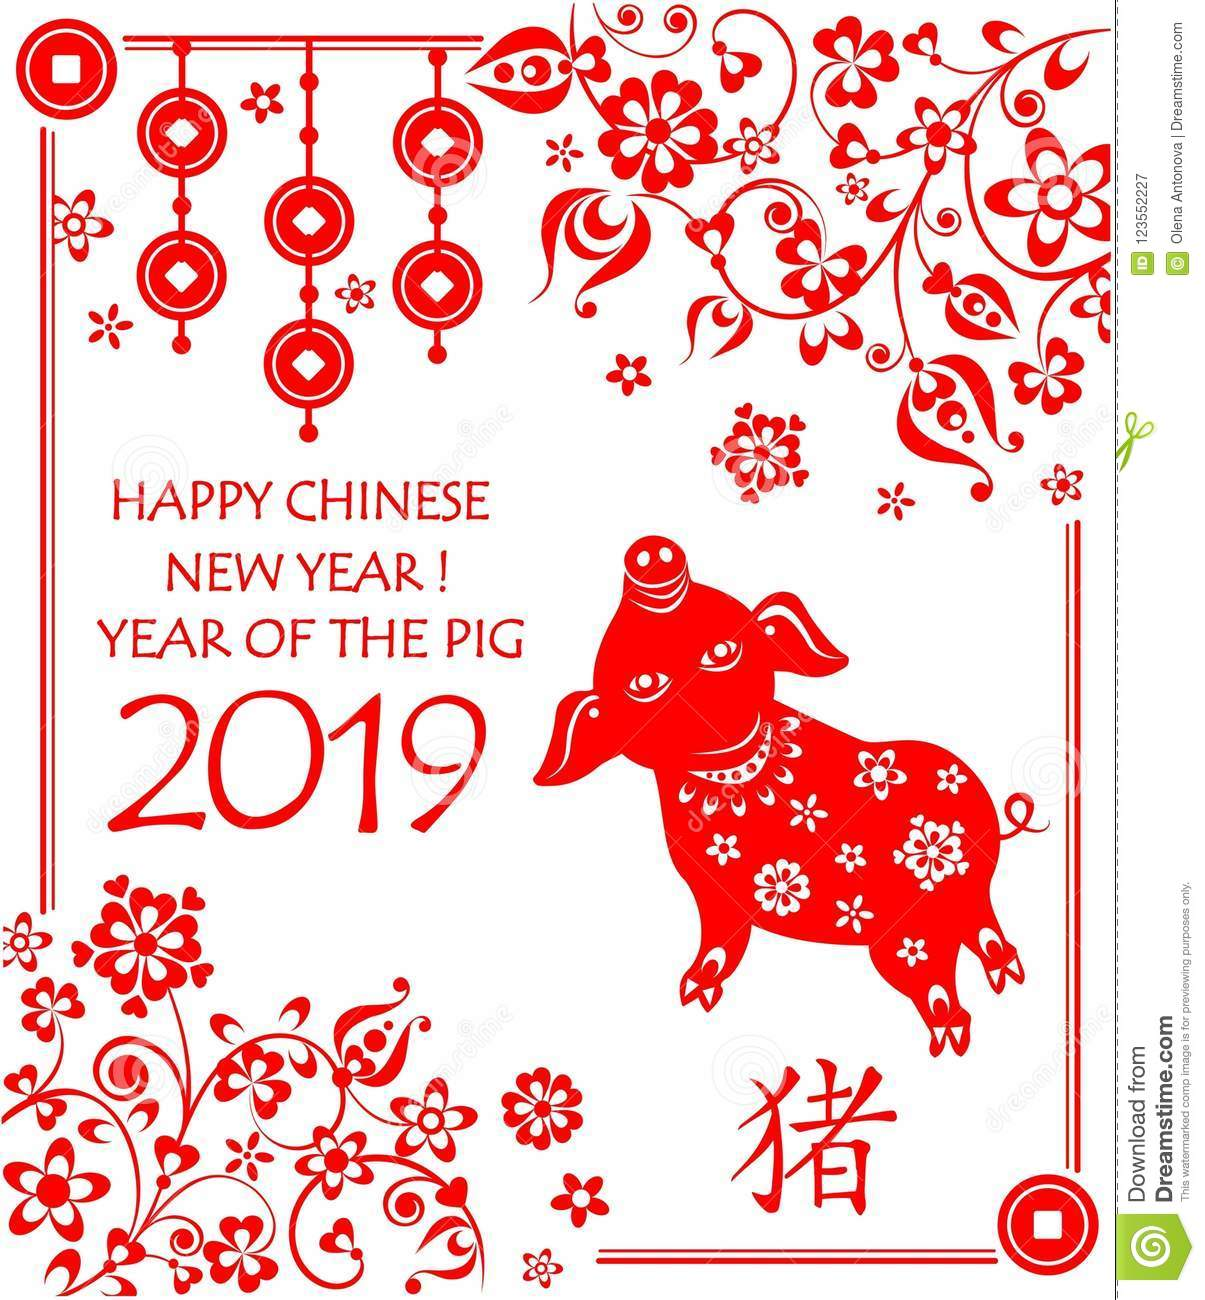 Greeting Card For 2019 Chinese New Year With Funny Red ...